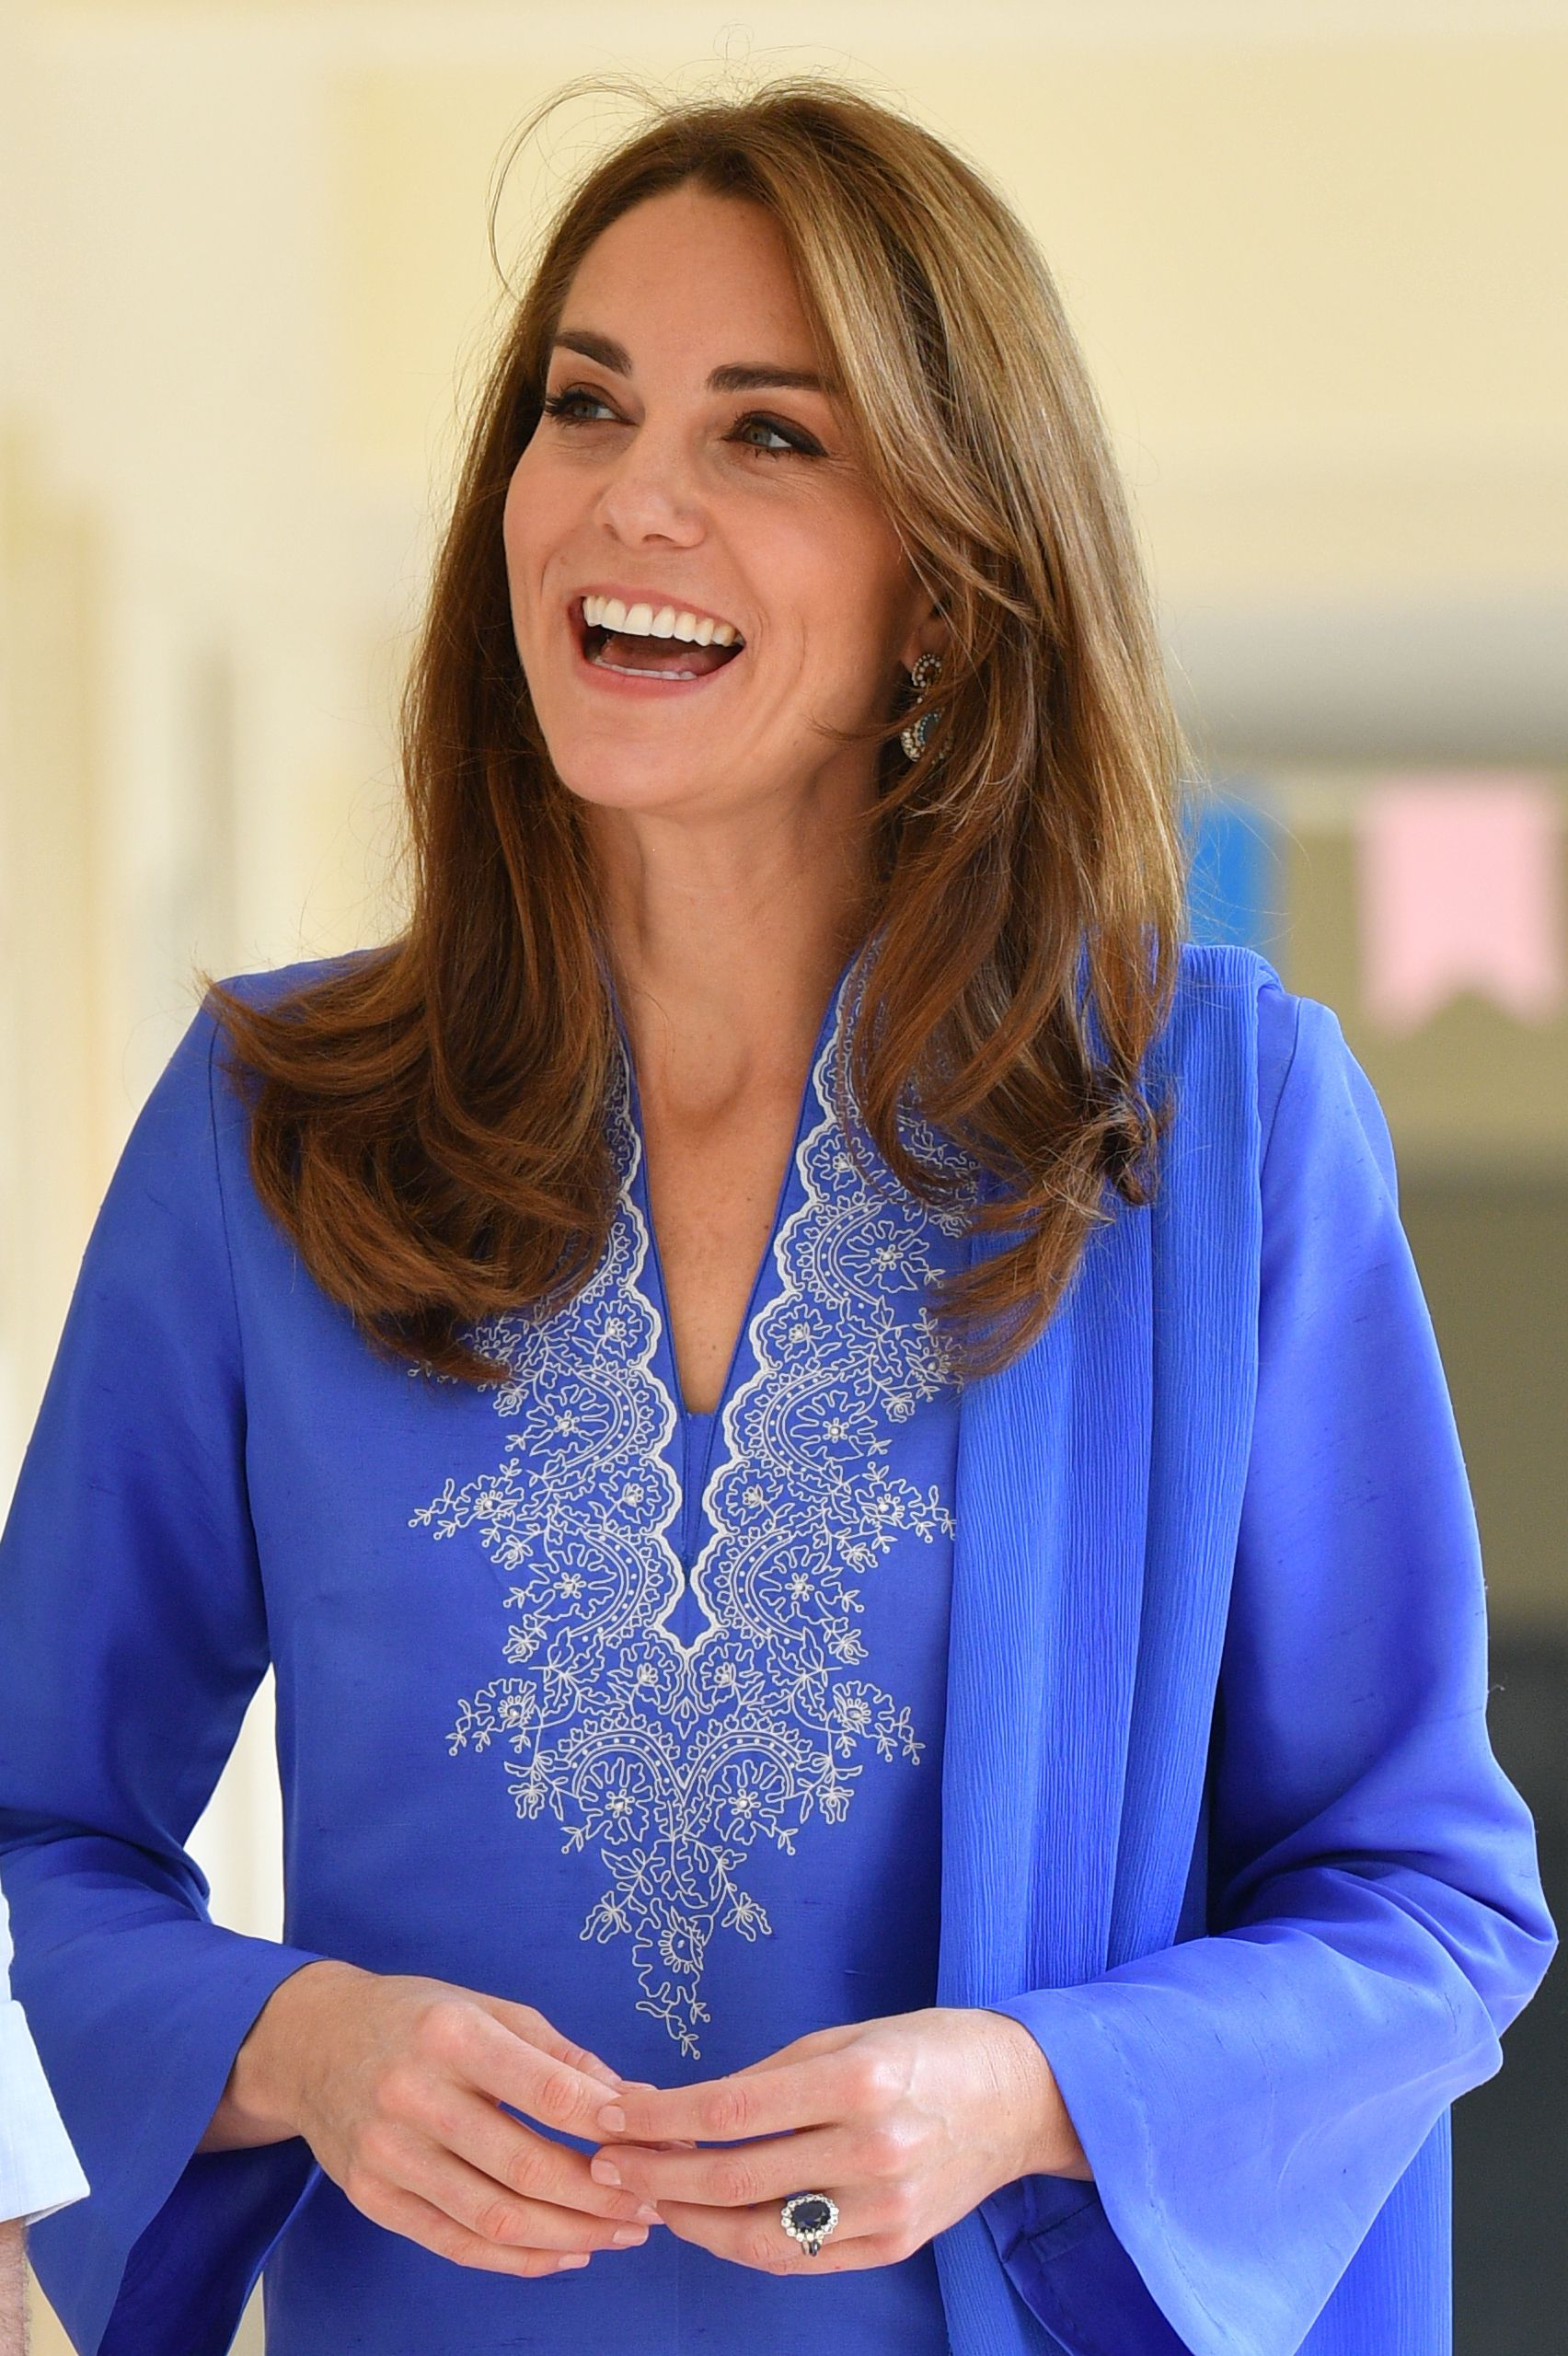 Kate matched her blue outfit and earrings with a ring